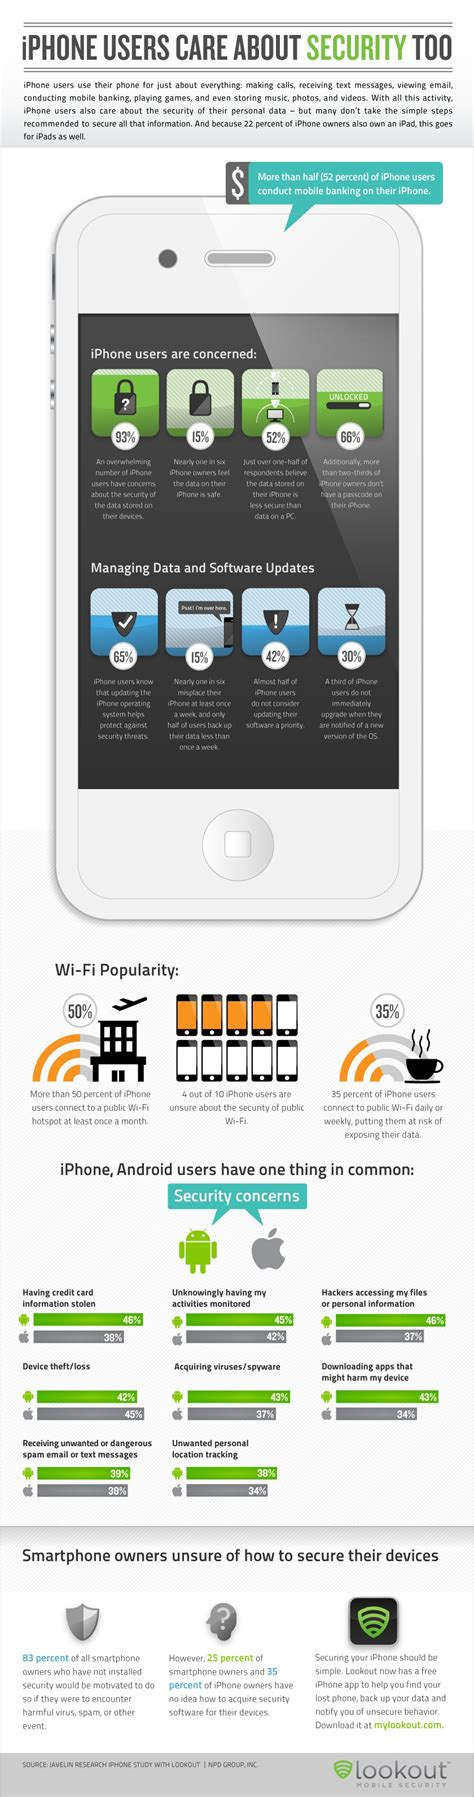 lookout mobile security iphone infographic iphone users and security concerns techrepublic